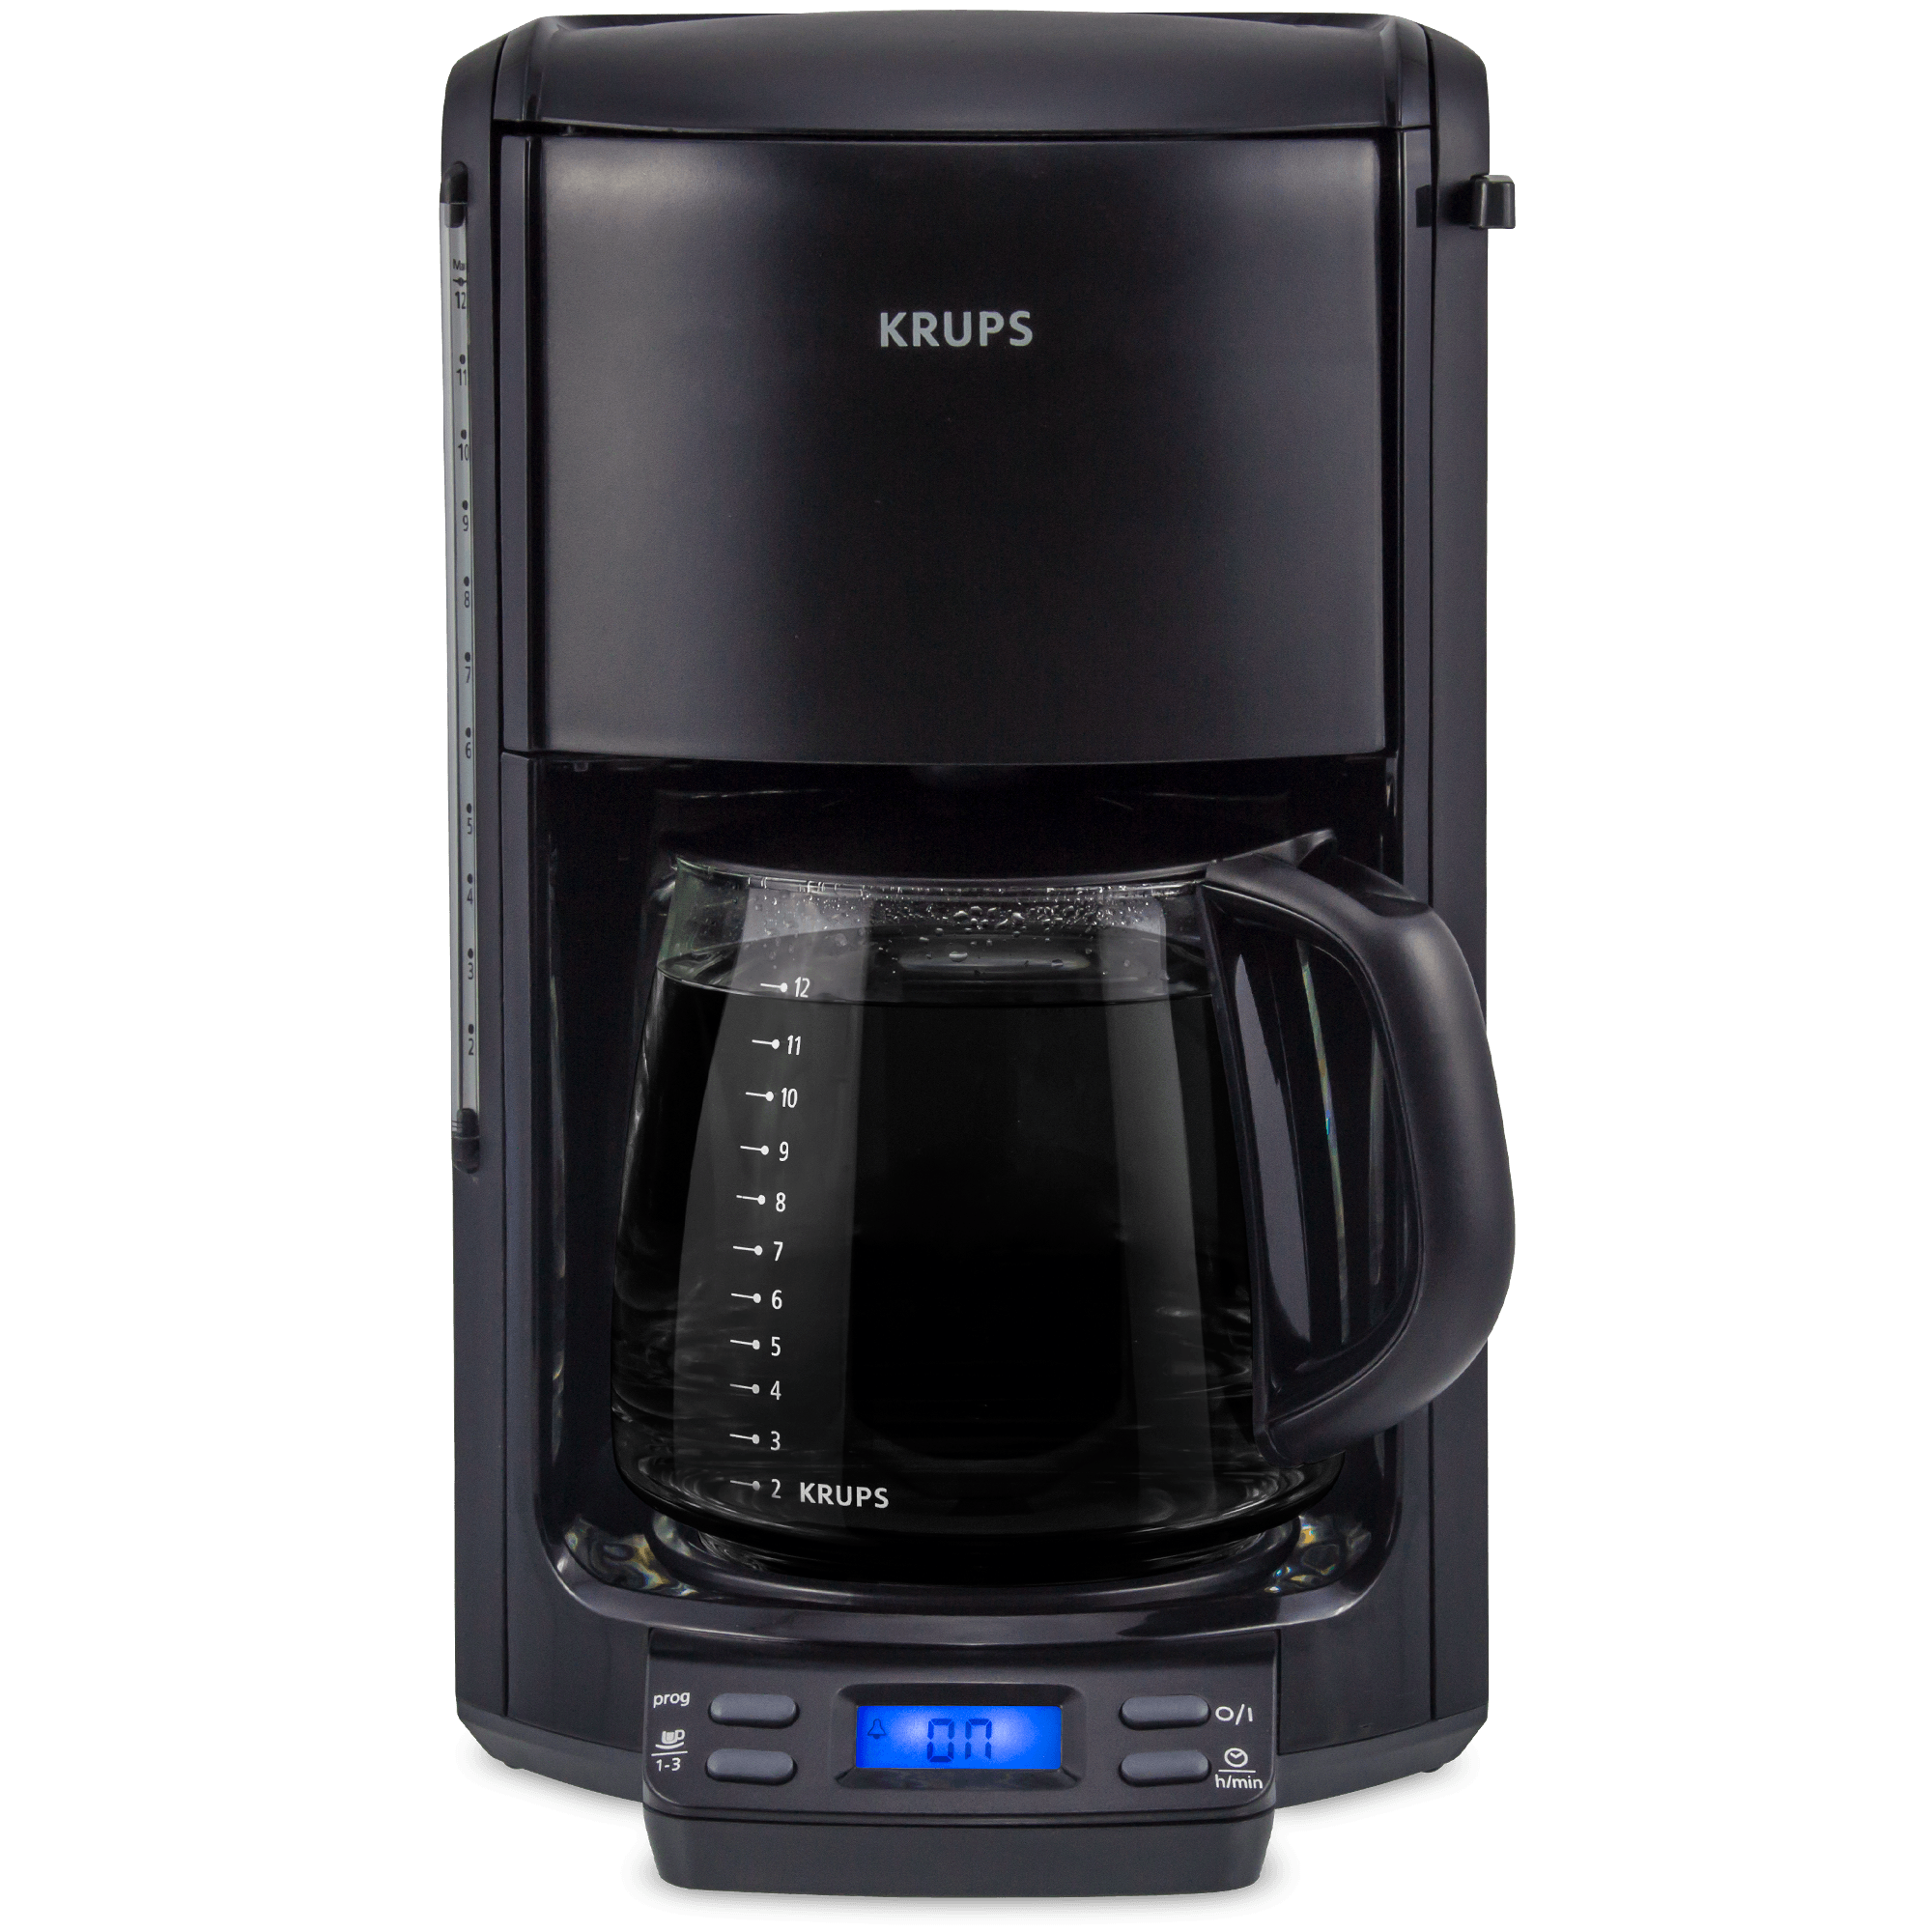 Krups Espresso Coffee Maker Xp1500 Manual : KRUPS Programmable Coffee Maker (Refurbished)